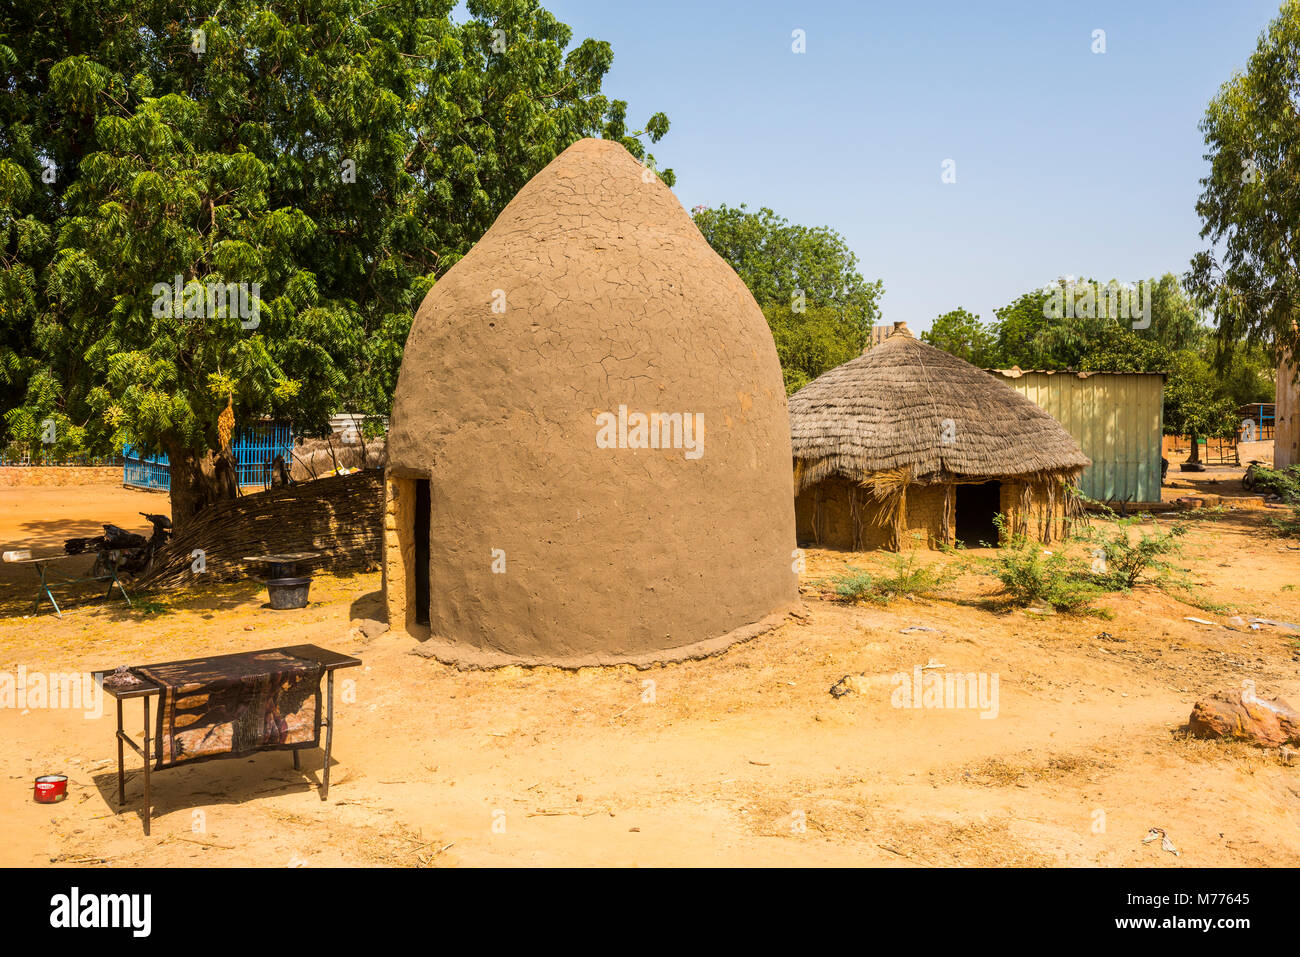 Traditional hut in the National Museum, Niamey, Niger, Africa - Stock Image